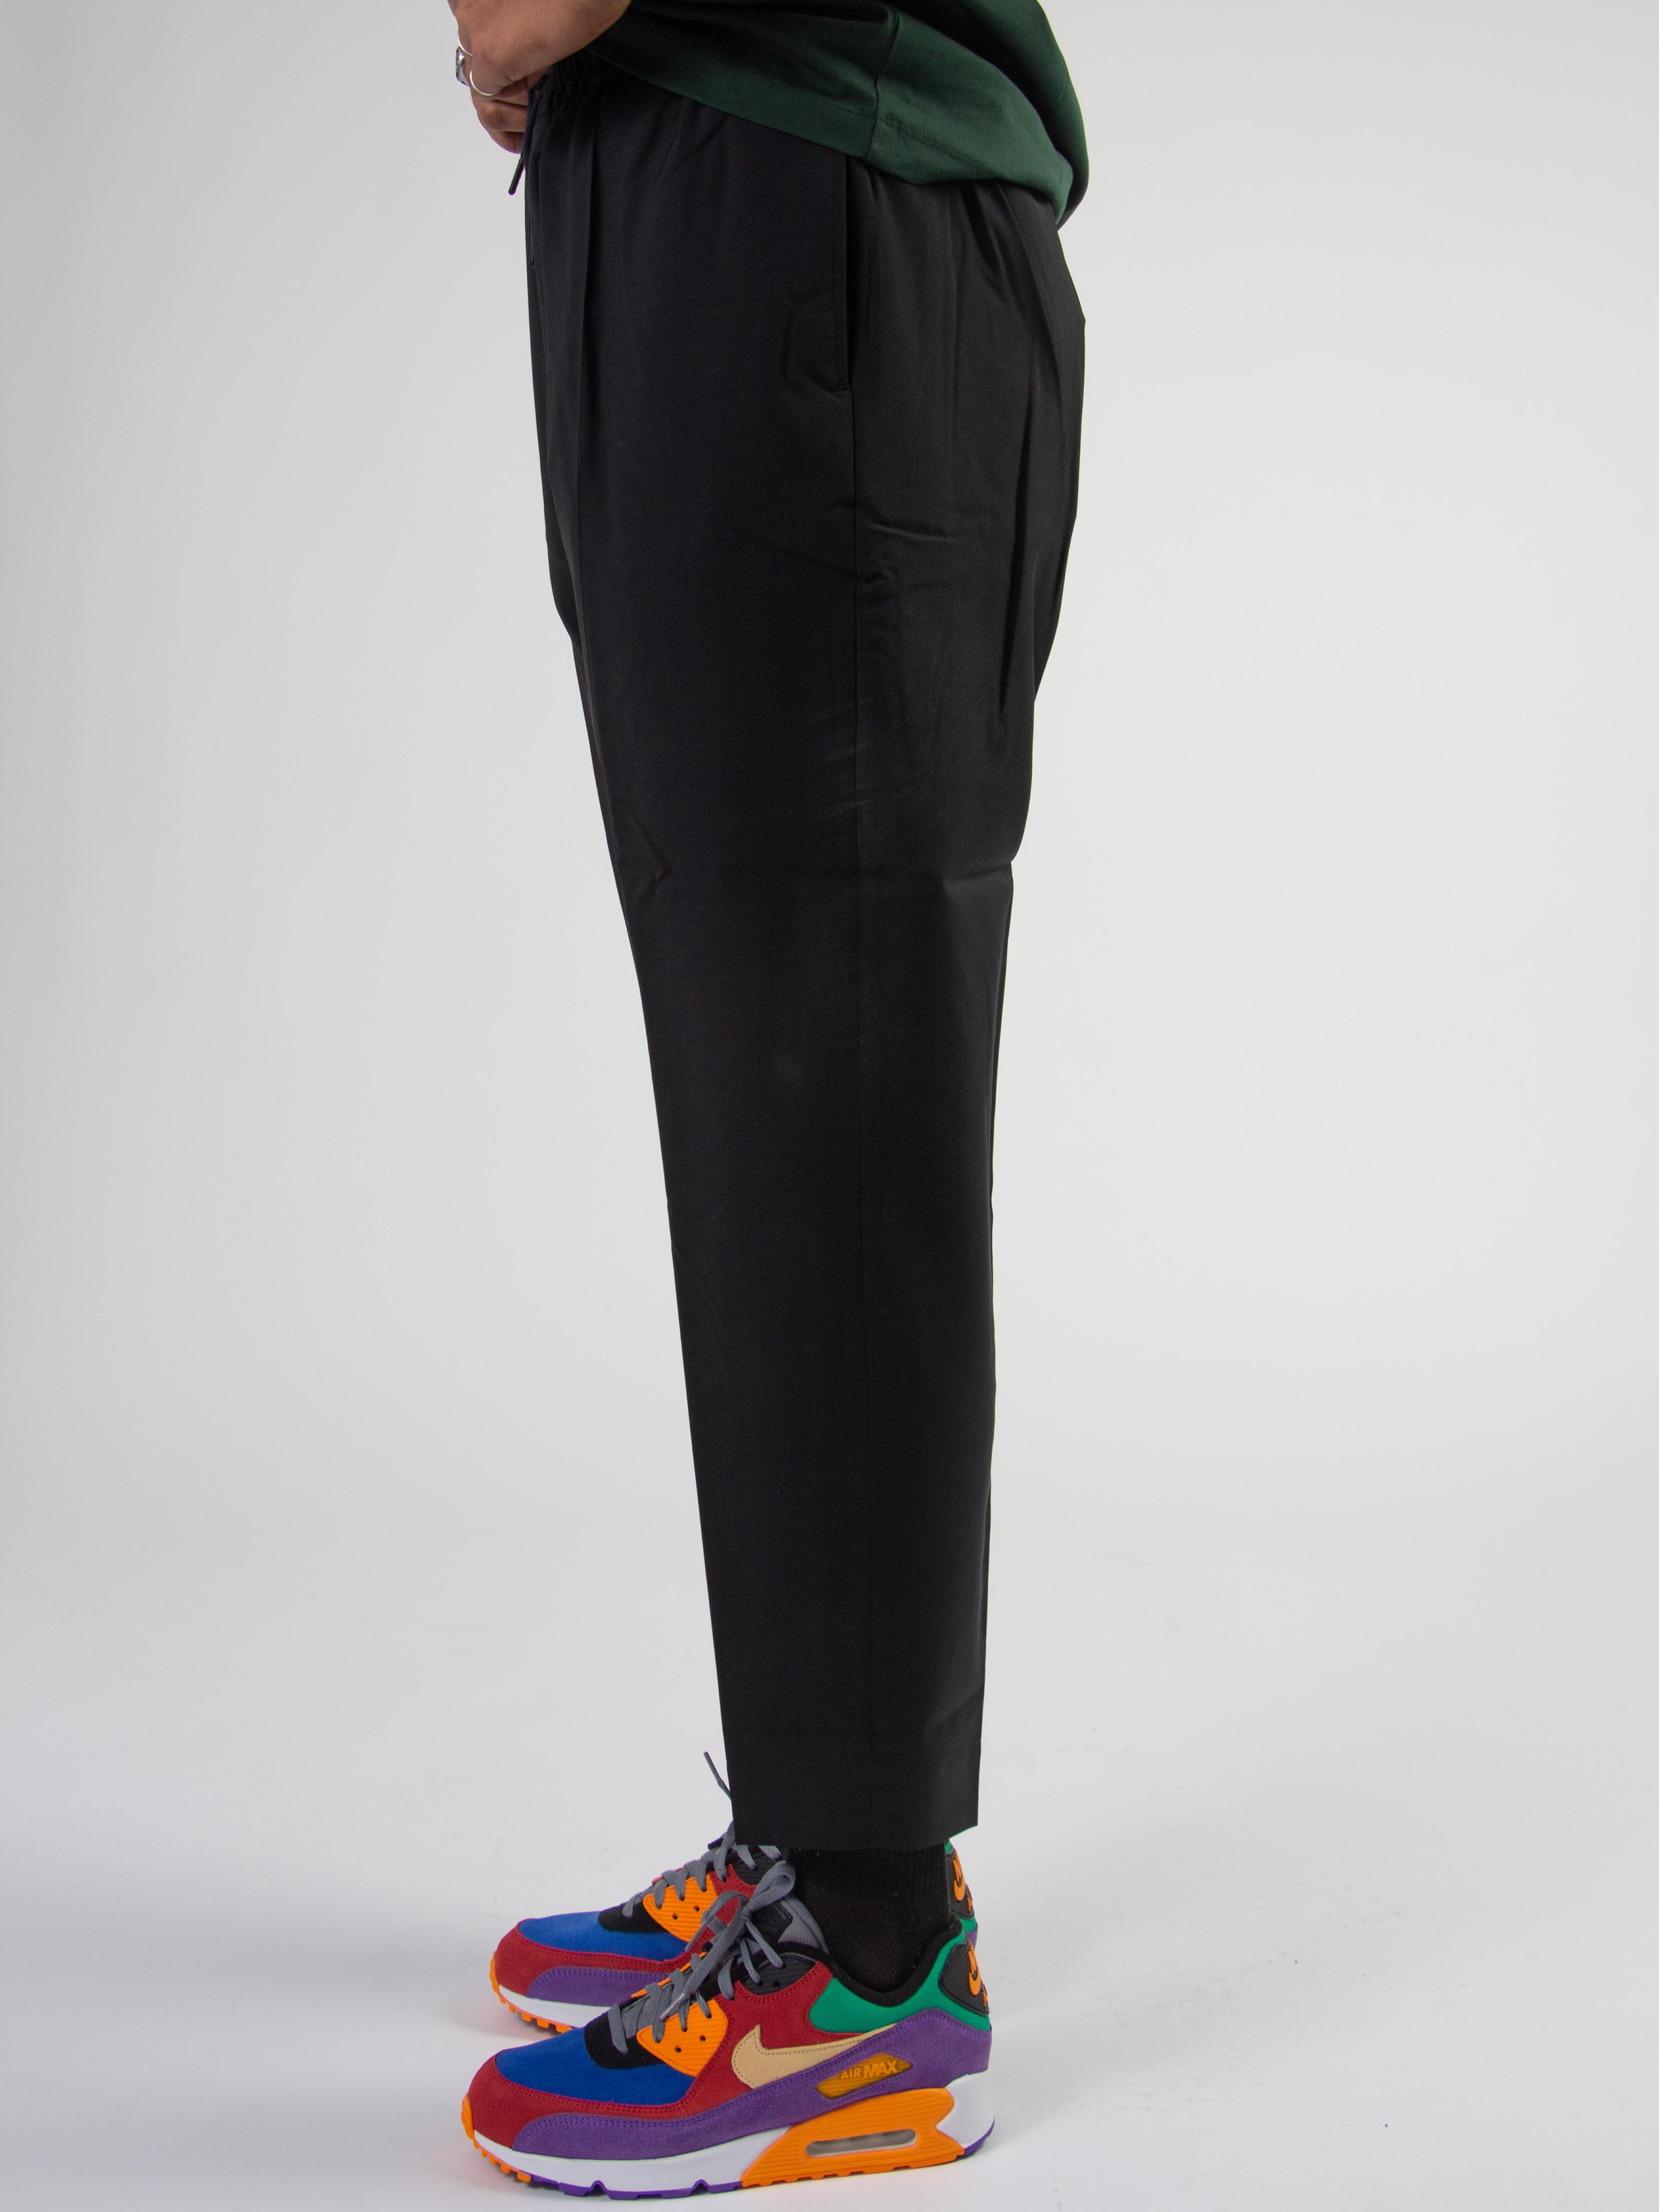 Jalousie Wool Trouser Black